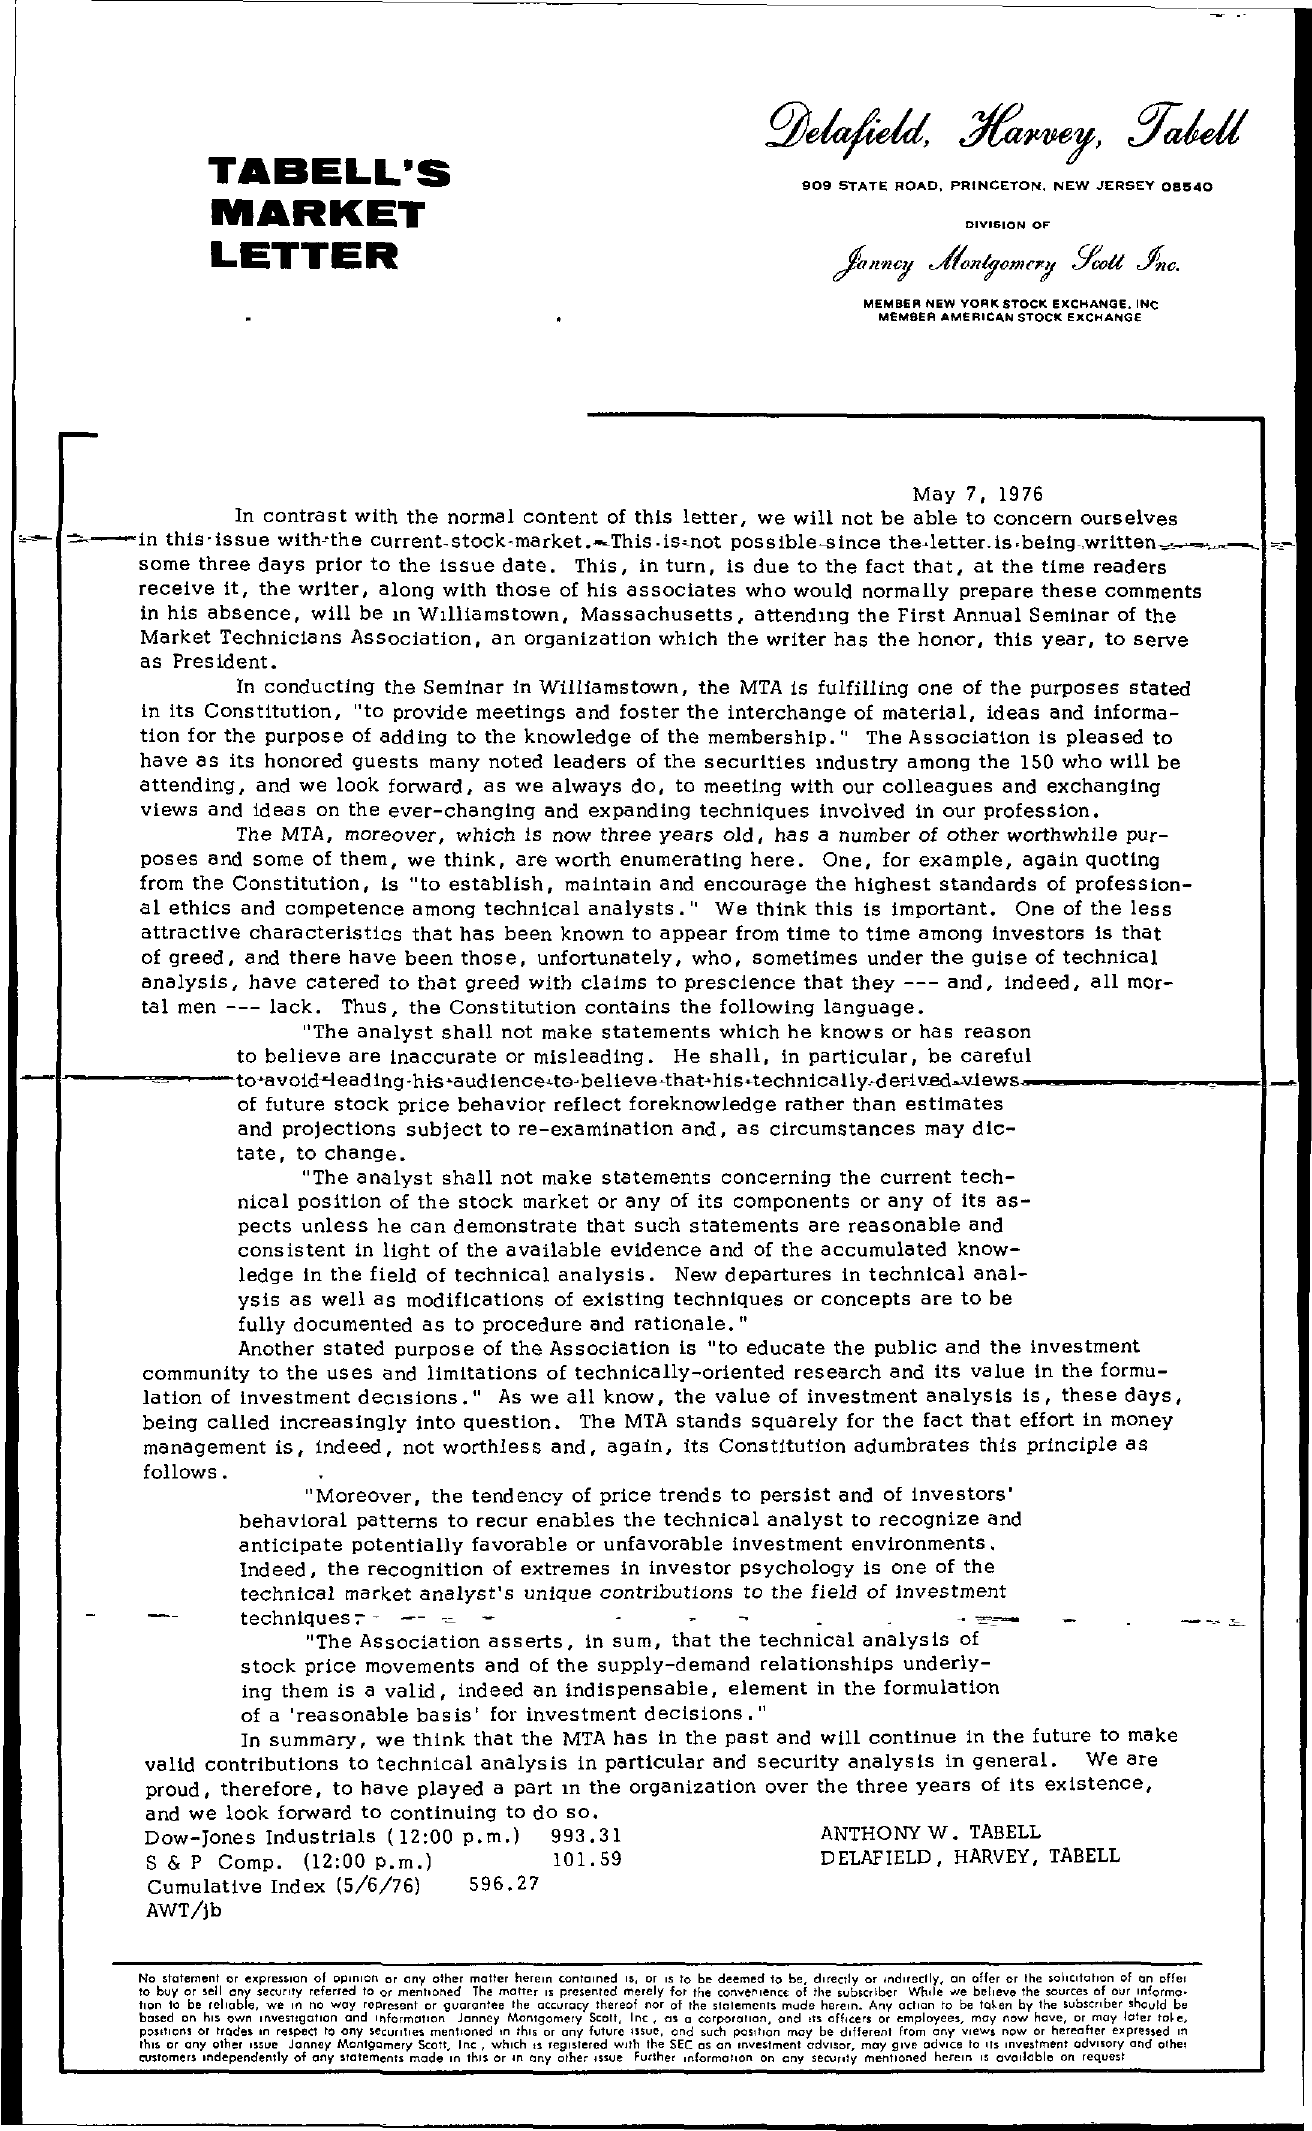 Tabell's Market Letter - May 07, 1976